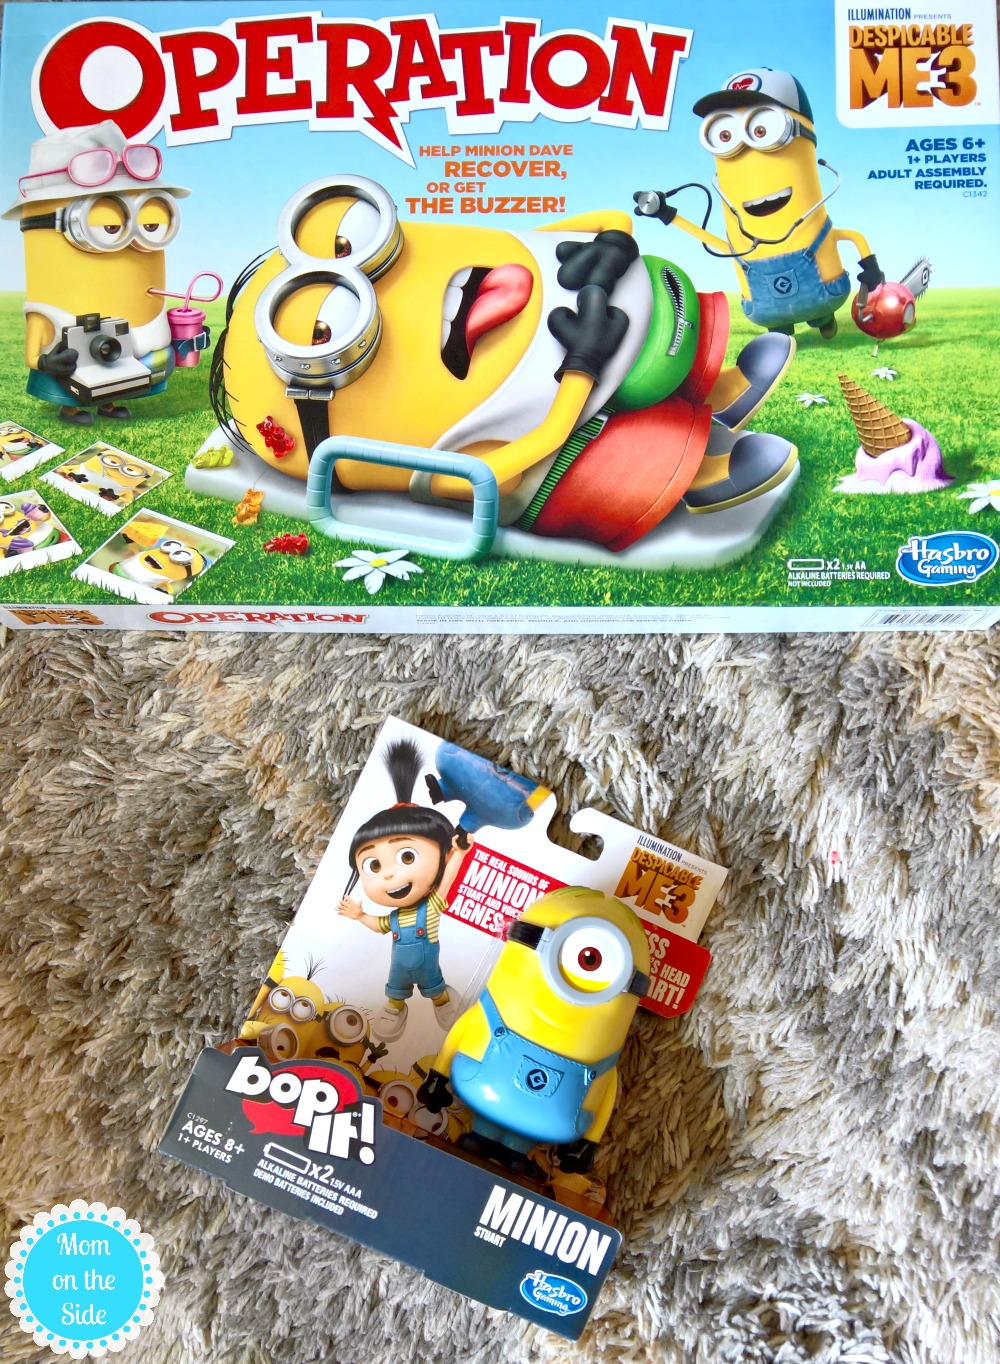 New Minions Games from Hasbro Gaming